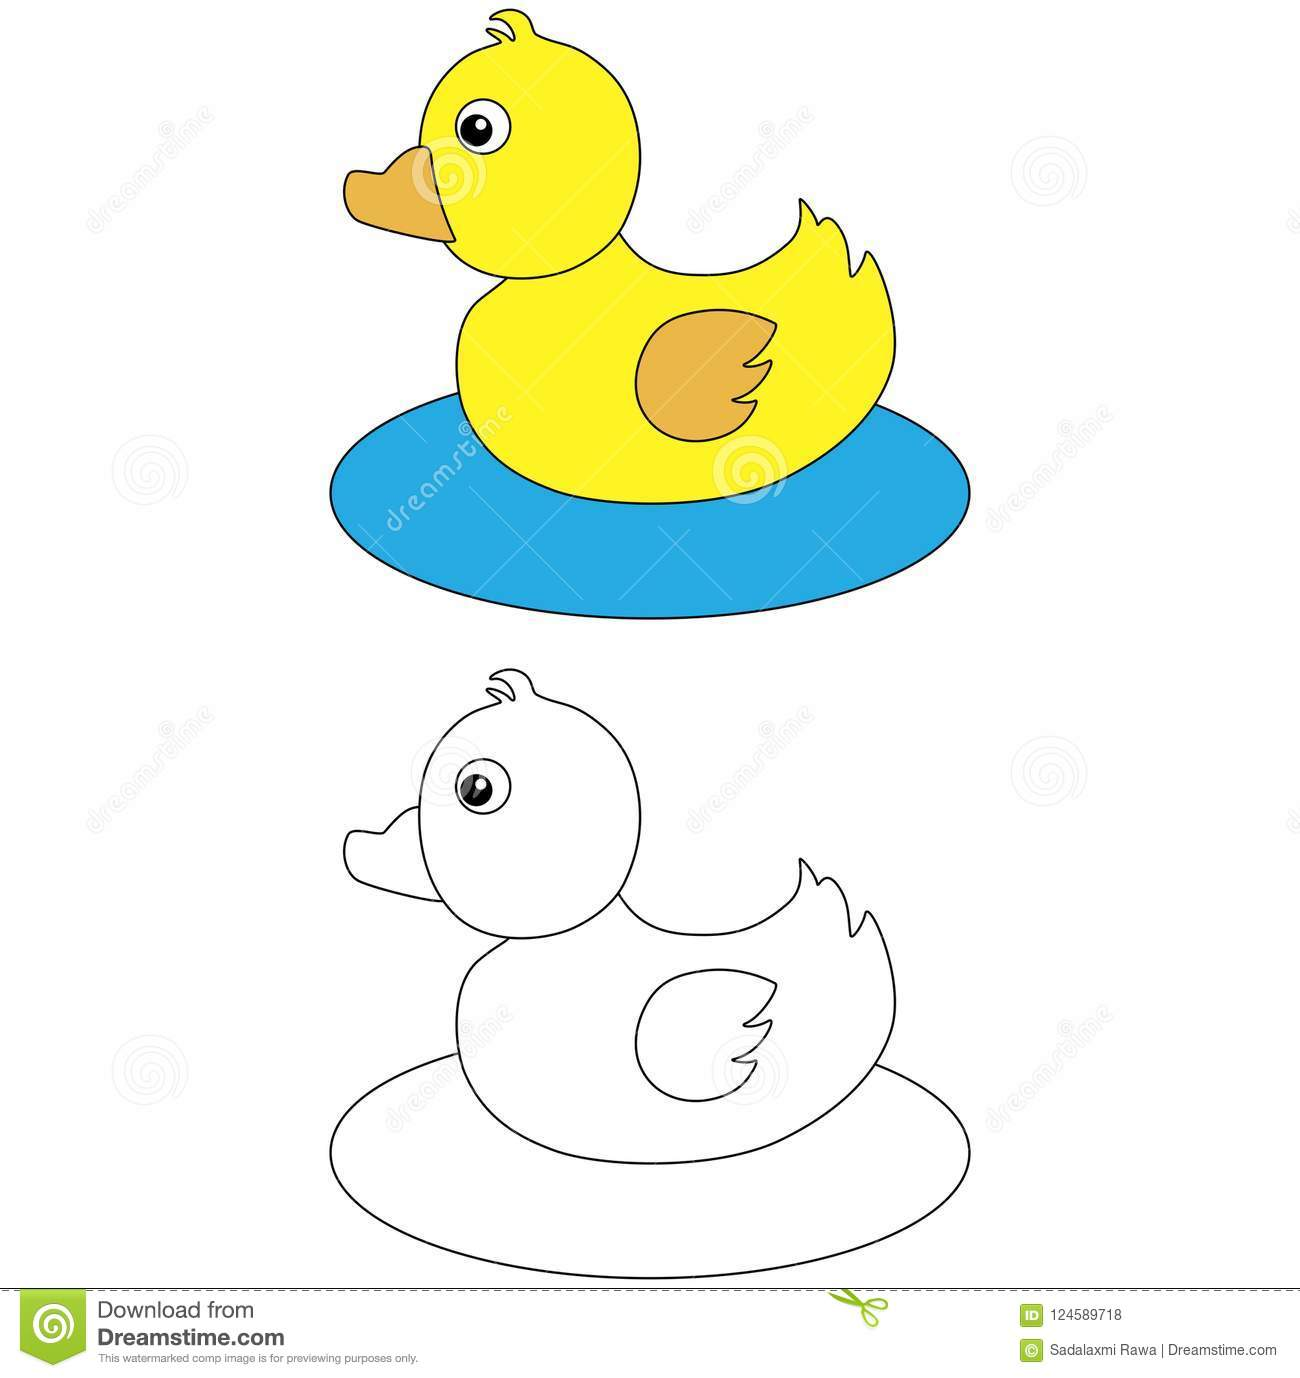 Rubber duck on water